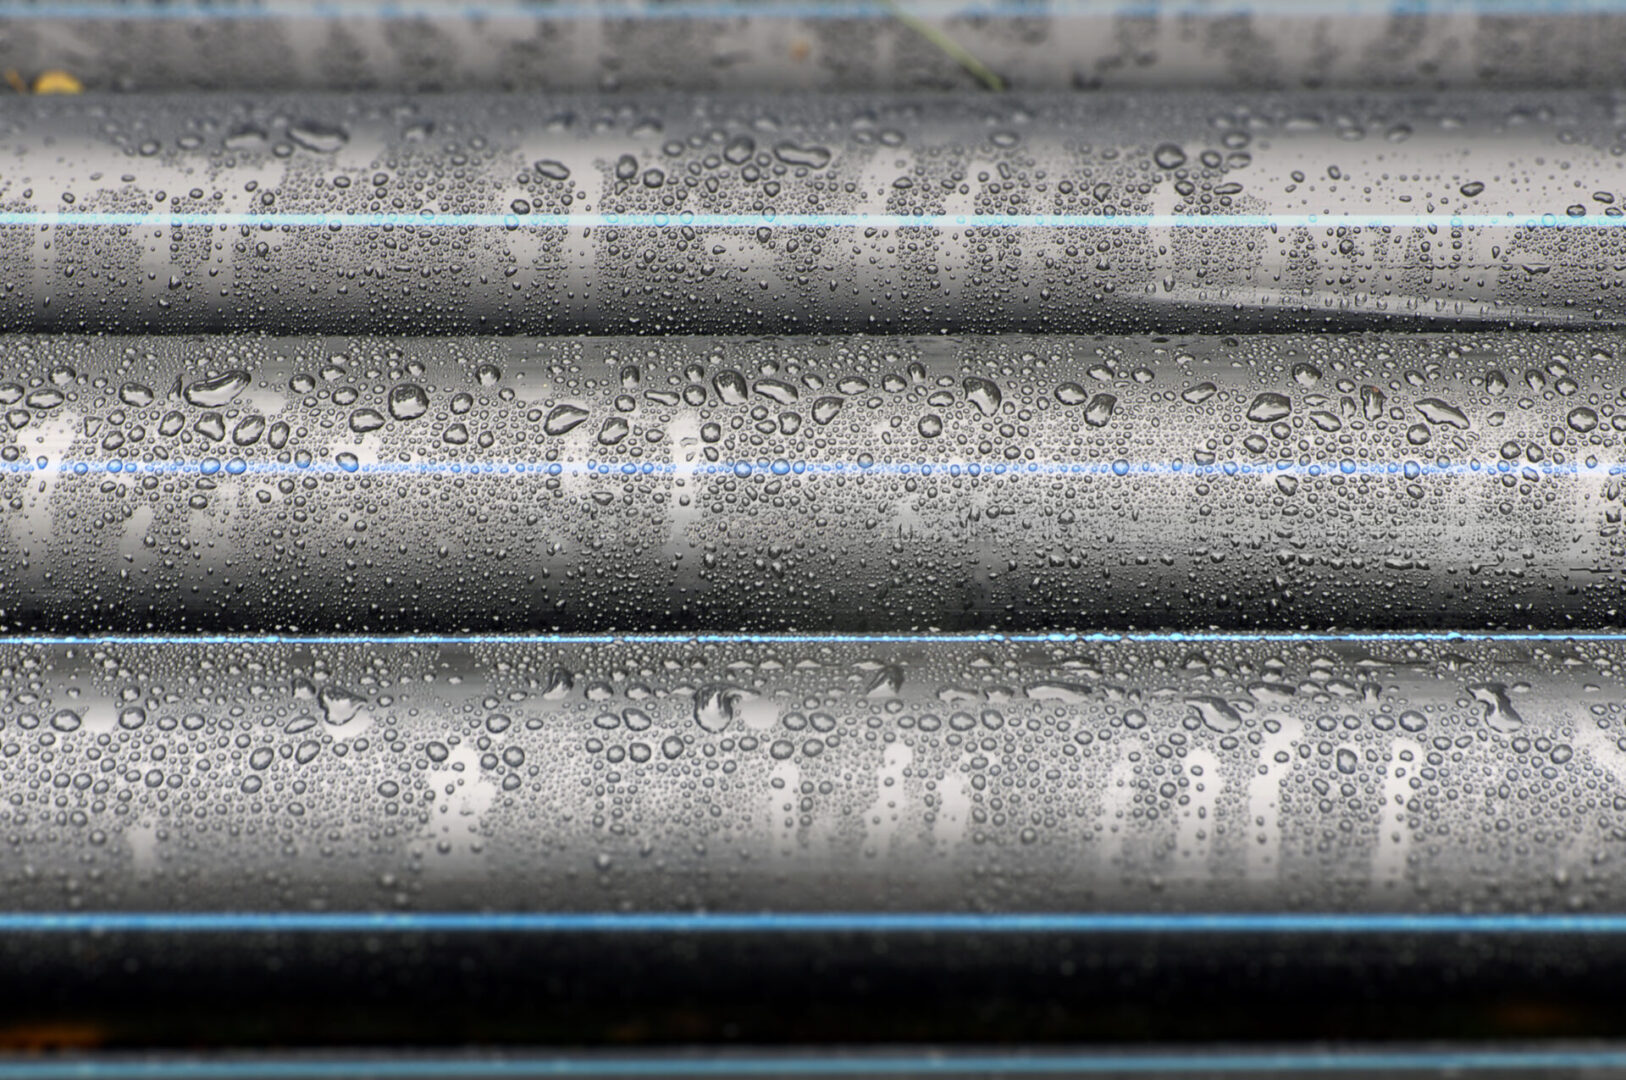 Many industrial black plastic pipes with water drops close-up in perspective.